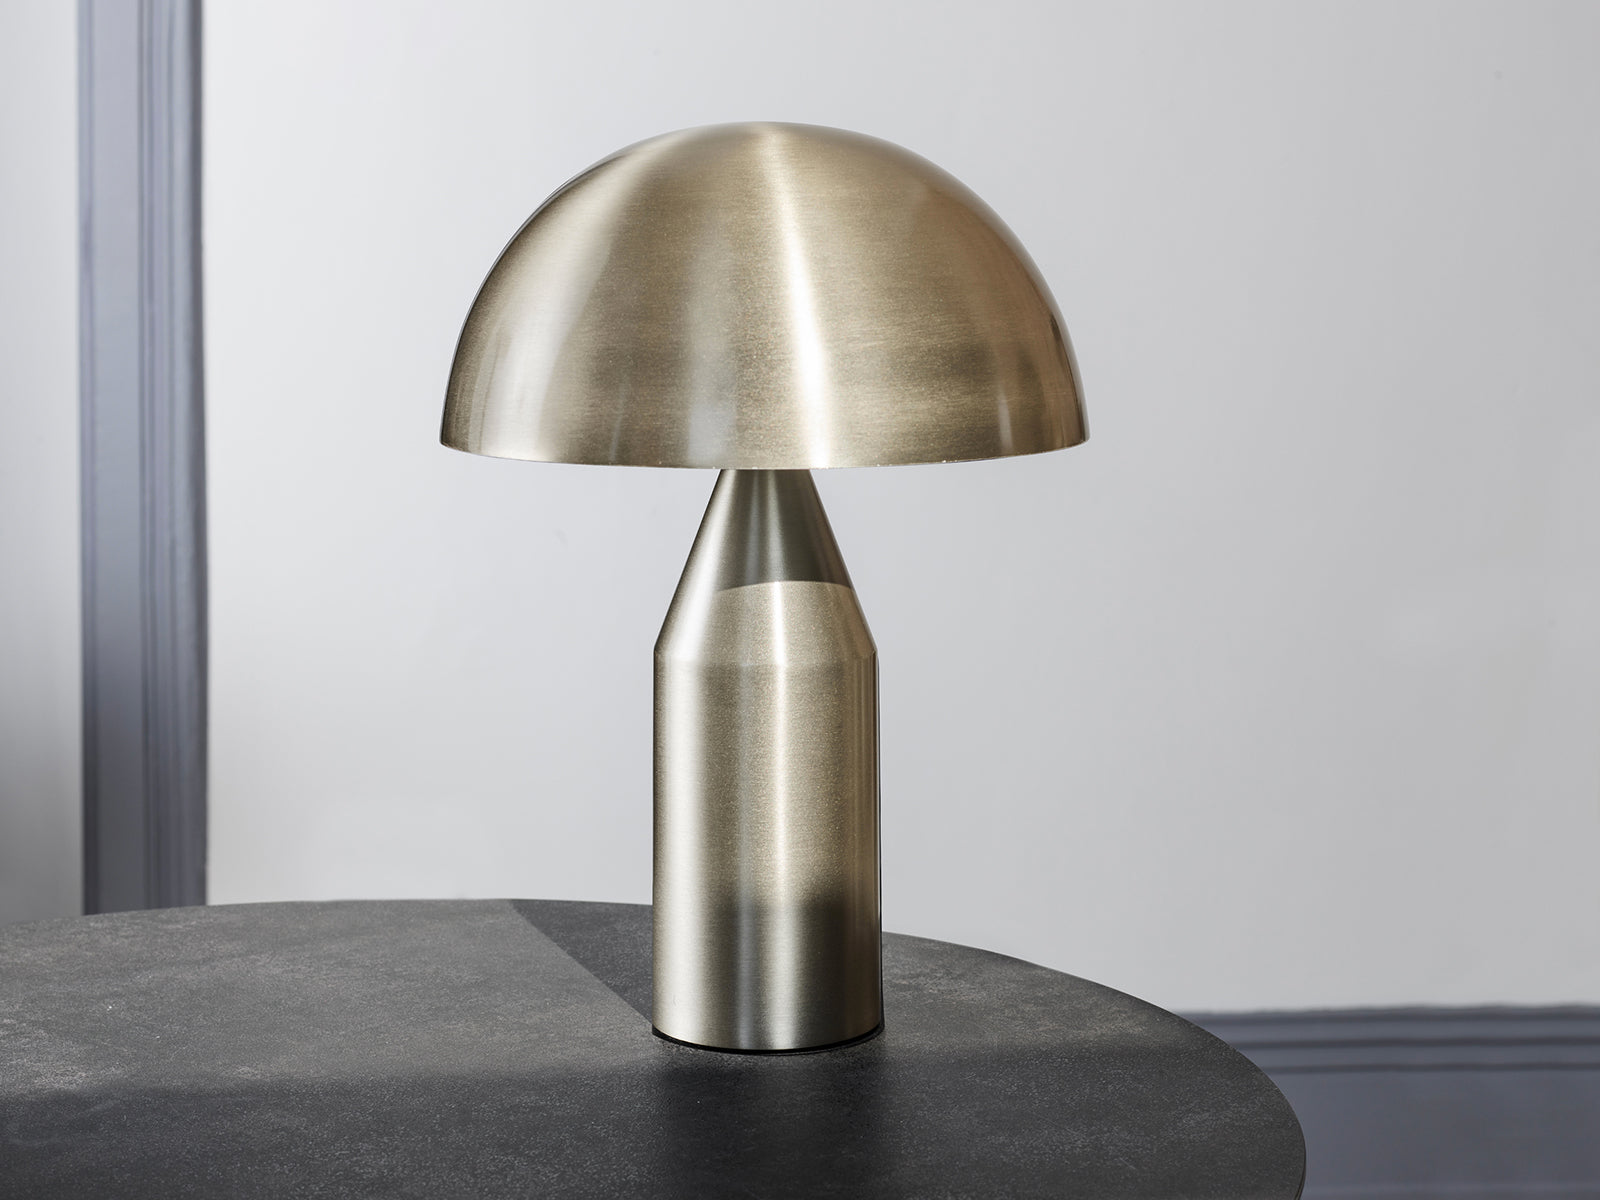 Mantar Lamp in Nickel